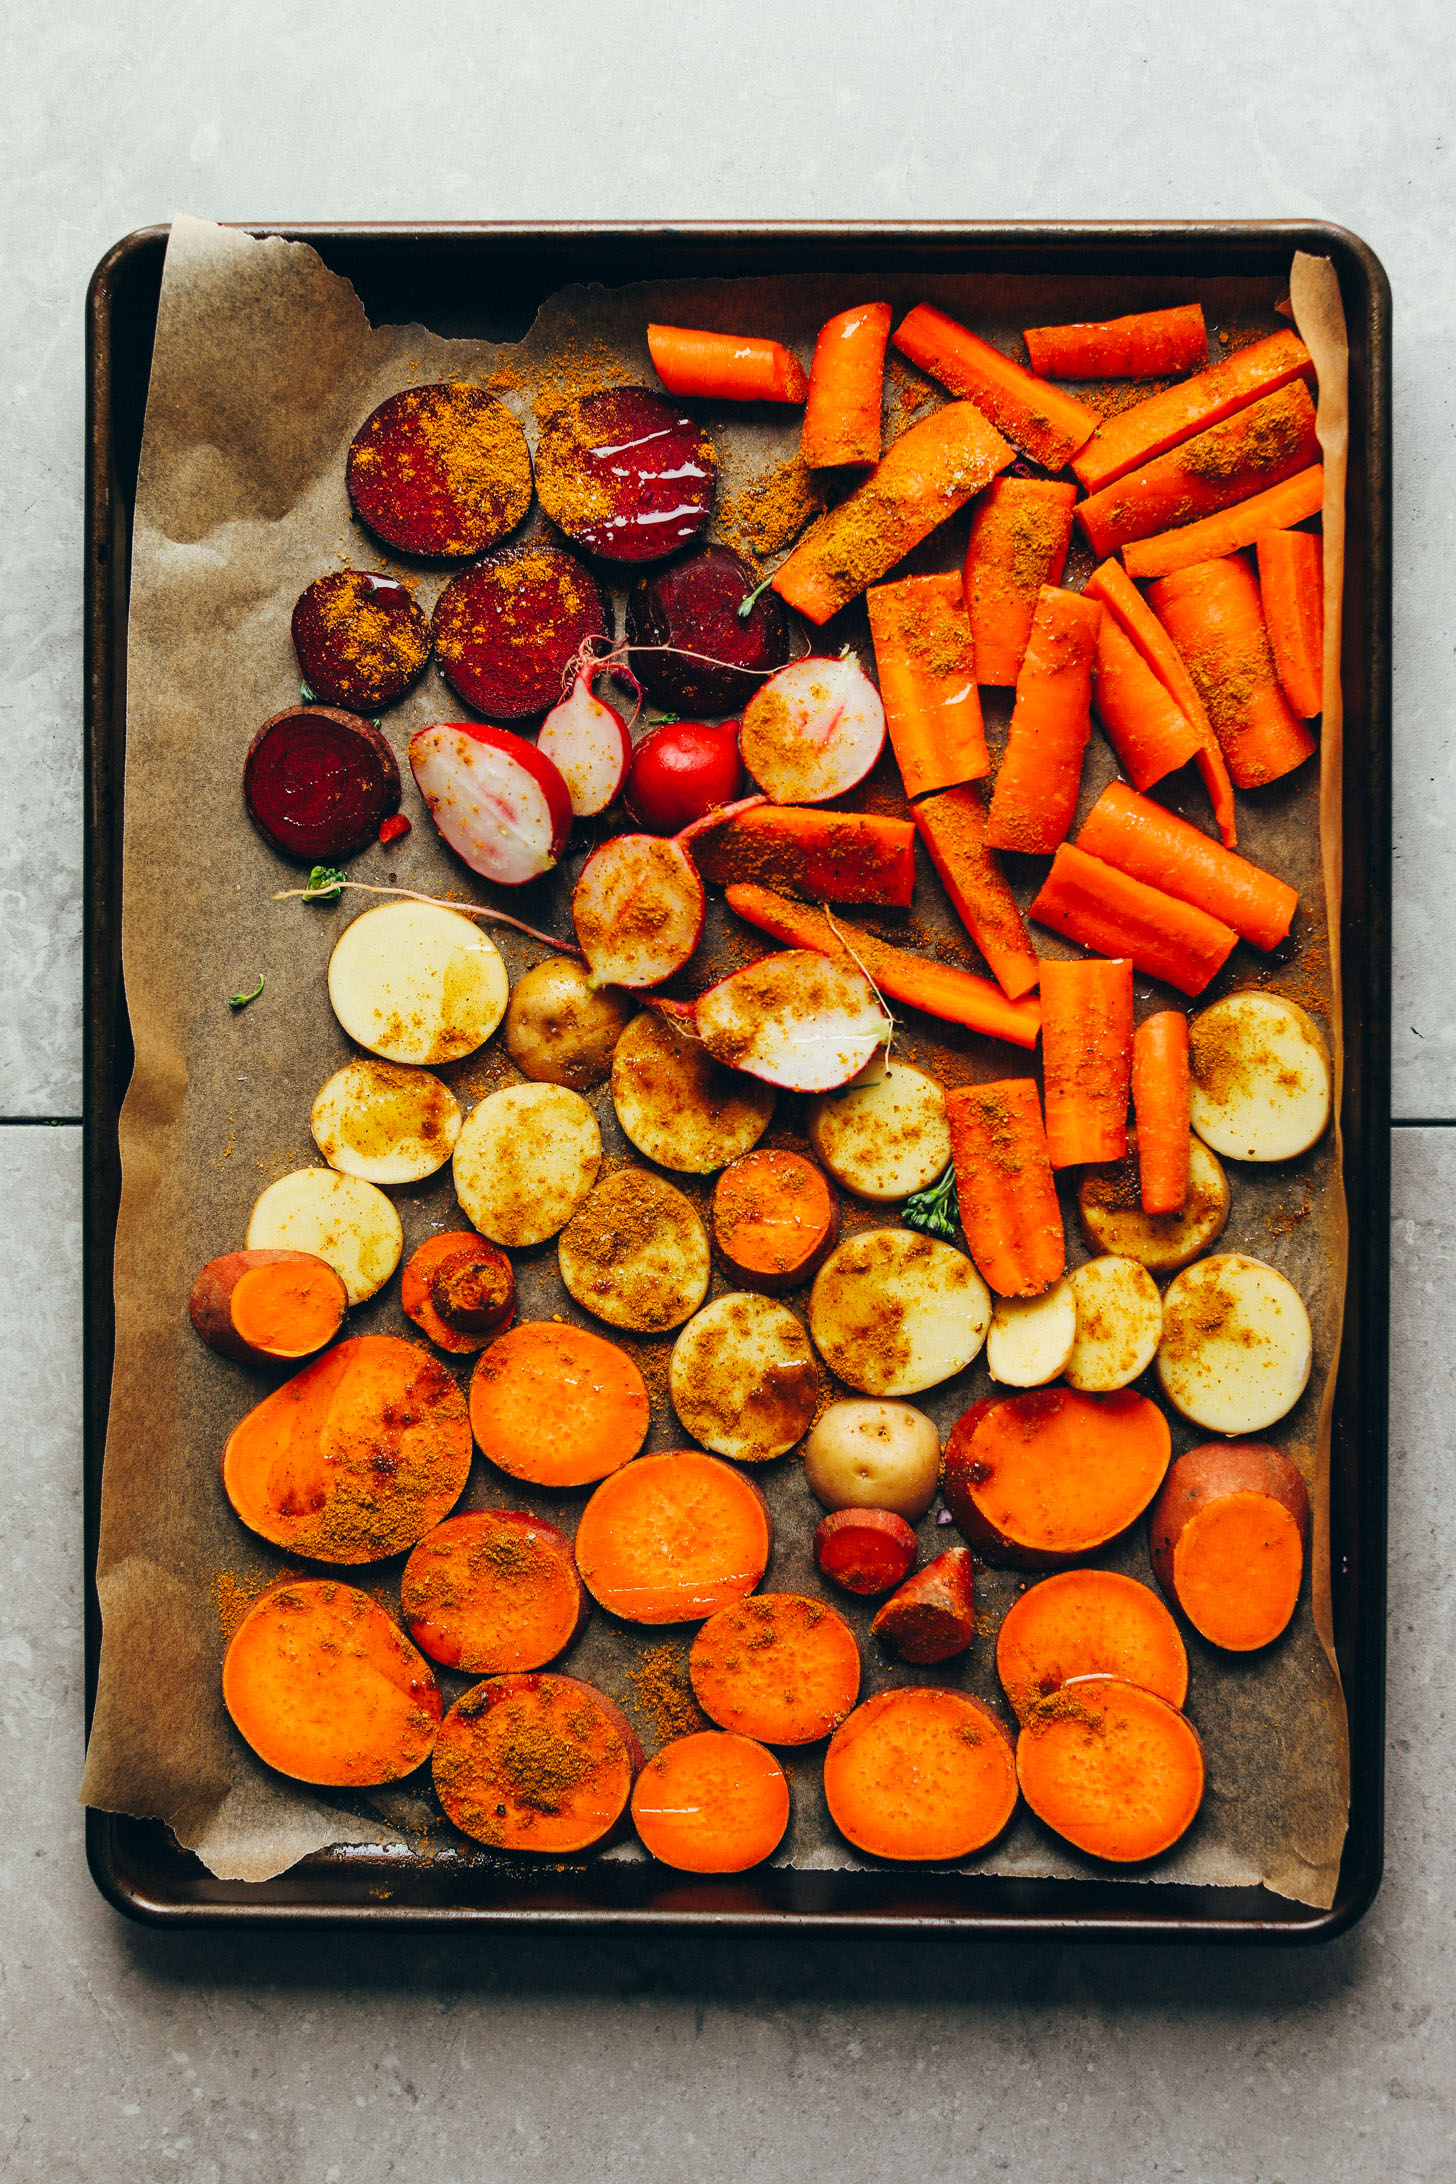 Parchment-lined baking sheet filled with carrots, beets, radish, and sweet potato for roasting